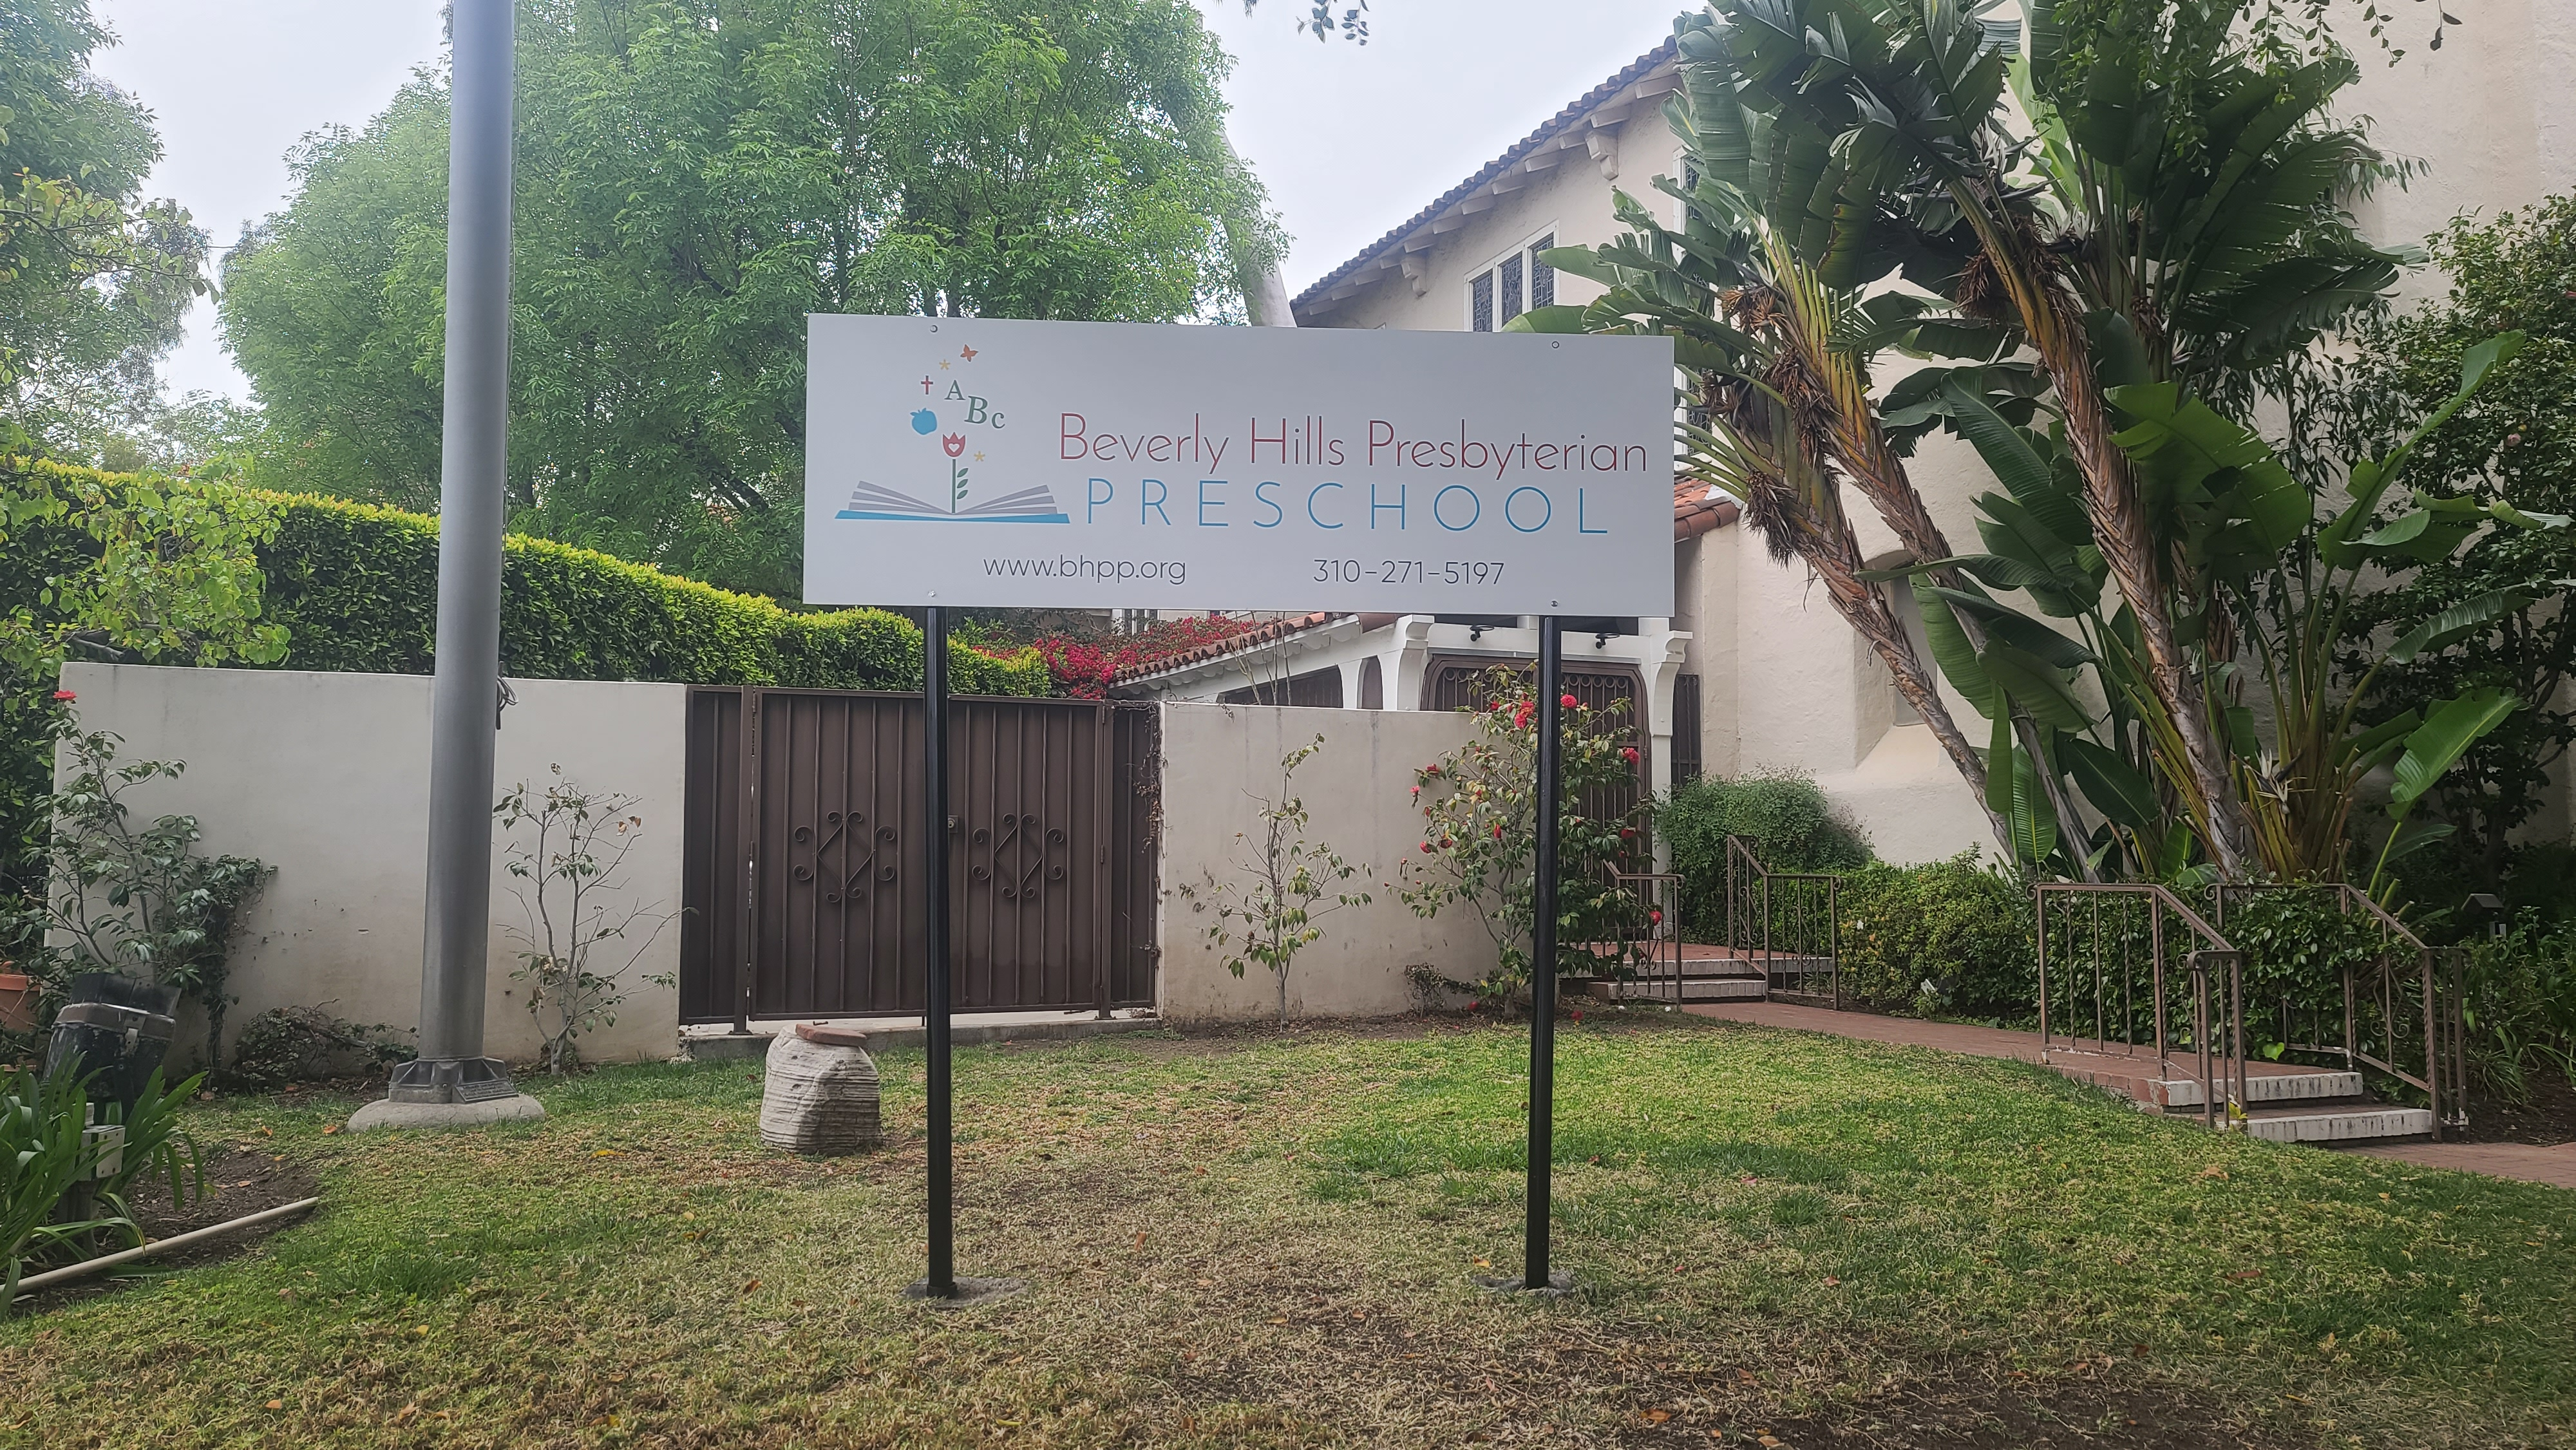 The post and panel school sign we fabricated and installed for for Beverly Hills Presbyterian Preschool in Beverly Hills.